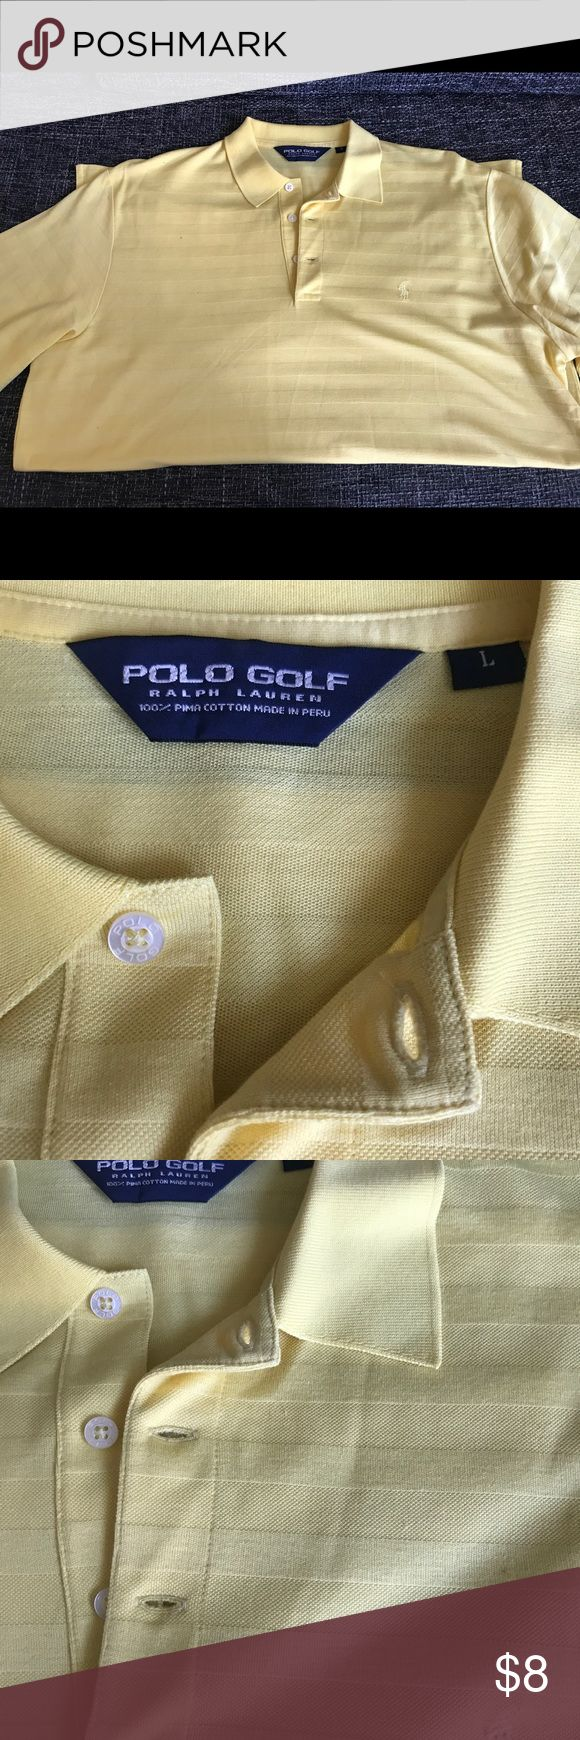 Used Ralph Lauren PoloGolf - Polo Yellow Size L Used Early 2000s Ralph Laure PoloGolf Polo In Yellow and size Men's Large, Purchased from Macys SF. Condition is very good, no stains of Damages. If you have any questions??? Please feel free to contact me, ThankYou for passing through my closet!! Polo by Ralph Lauren Shirts Polos